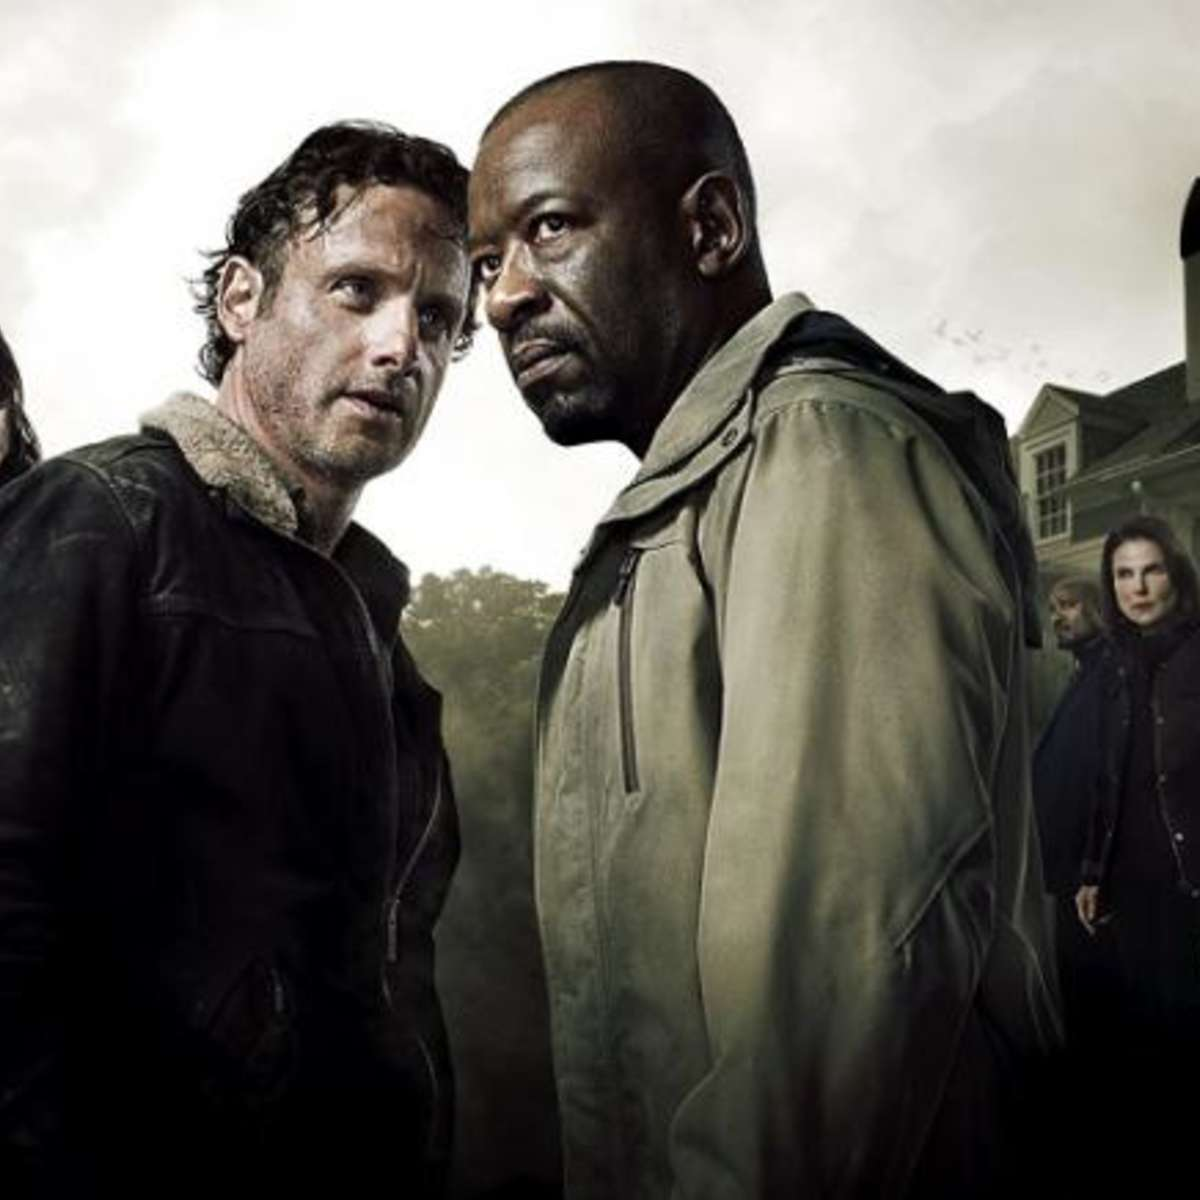 the-walking-dead-season-6-large_0.jpg